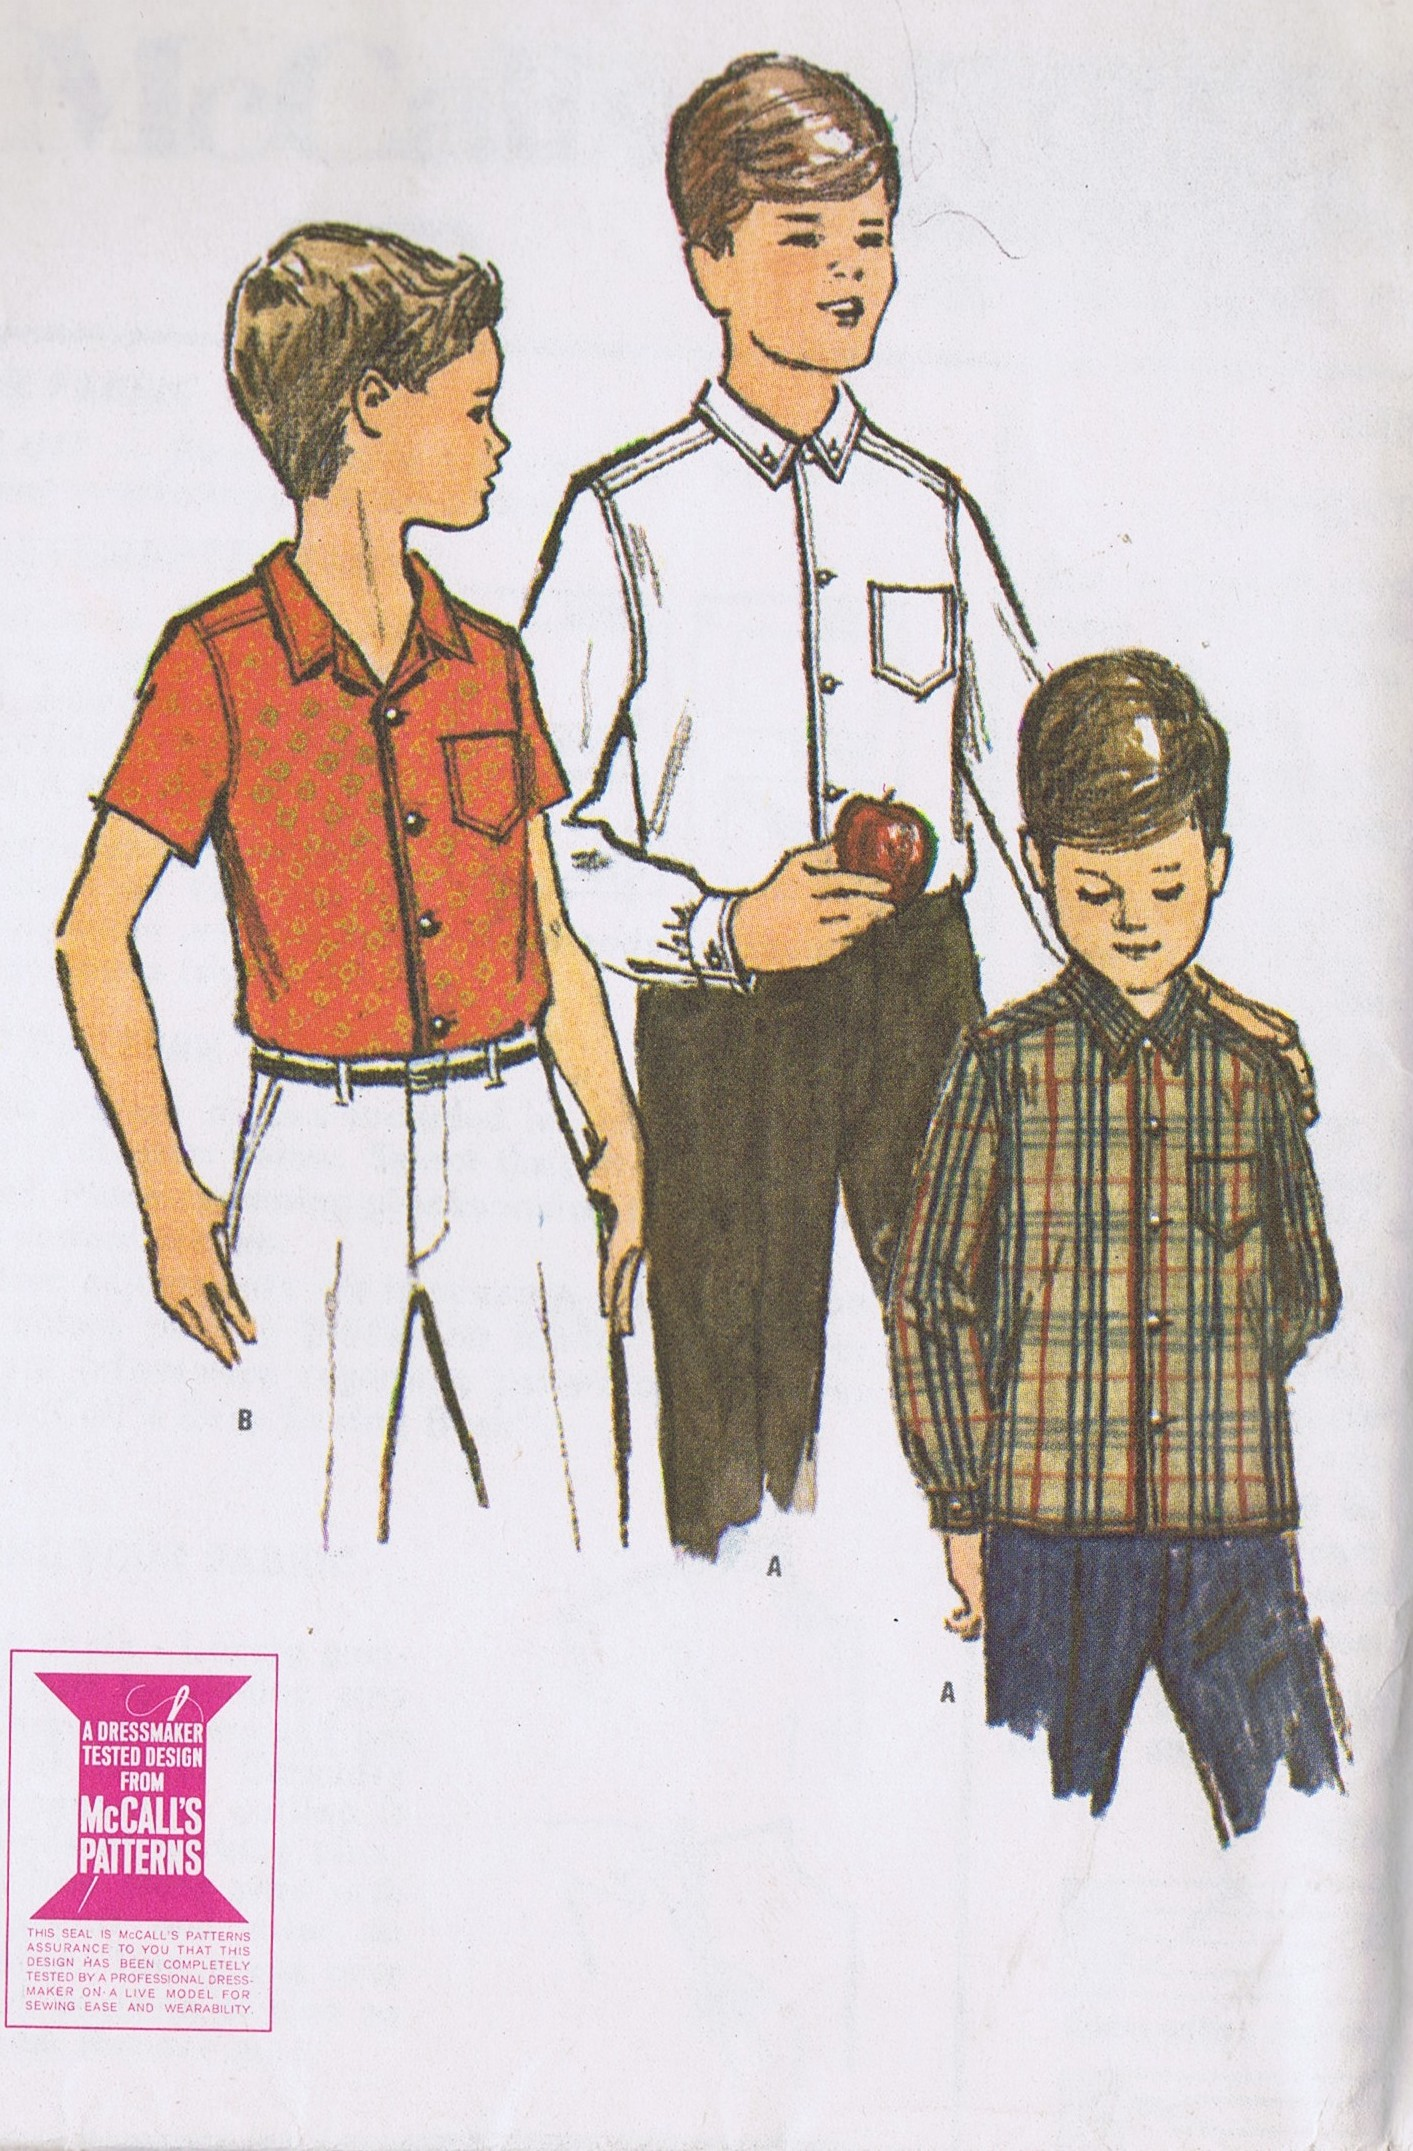 McCalls 7272 Boys Dress Sports Shirt VINTAGE SEWING PATTERNS Chest 30 Inches Uncut